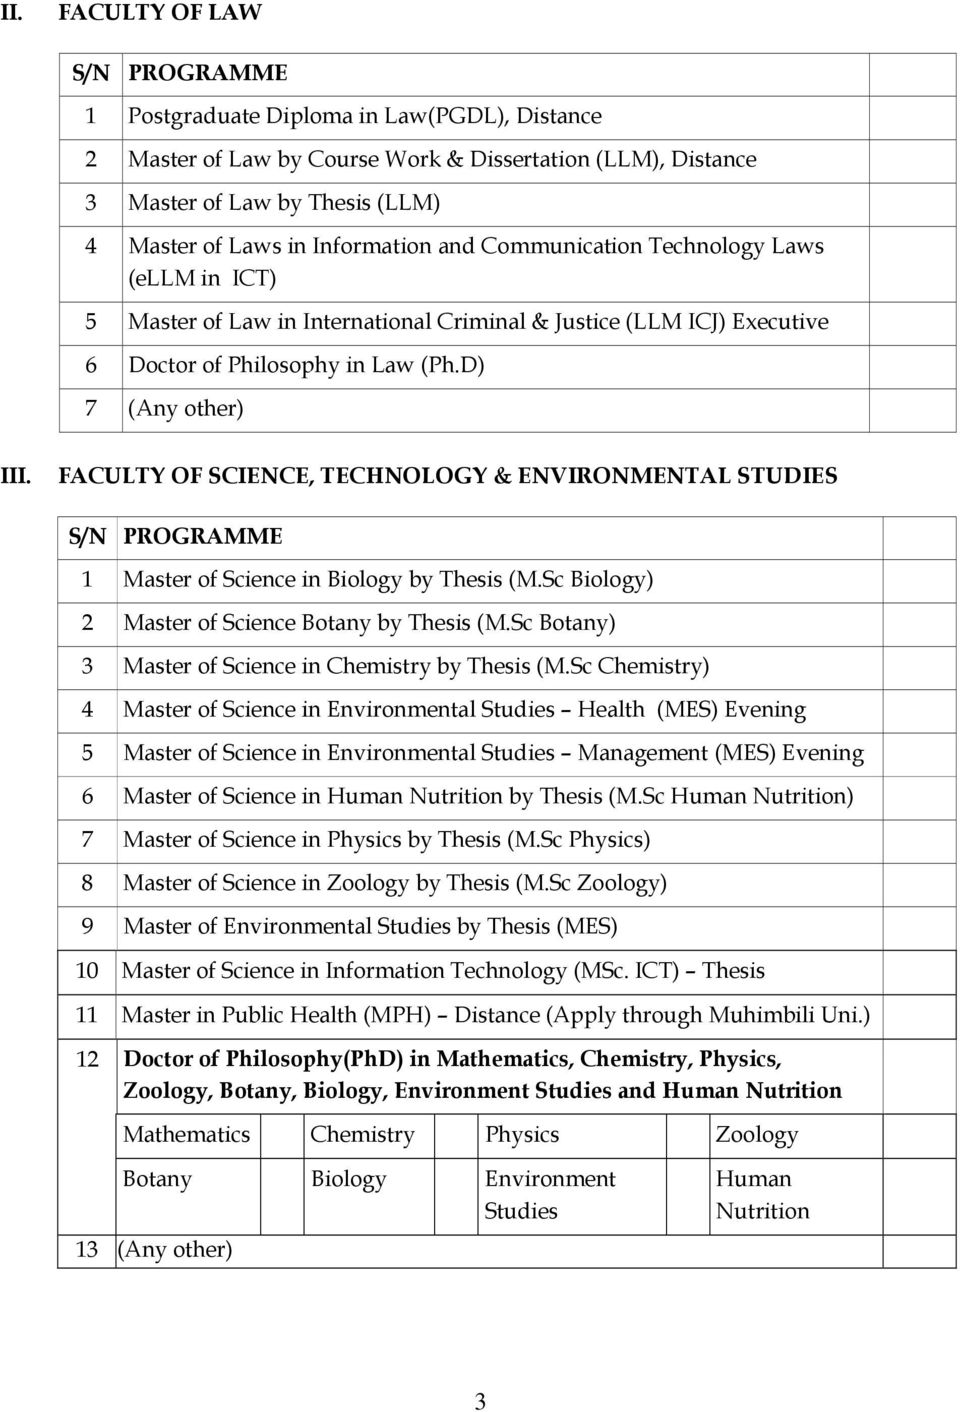 computer science topics for research paper do my astronomy zoology essay editing websites drama ghostwriters service st louis christian college application essays college admissions academic